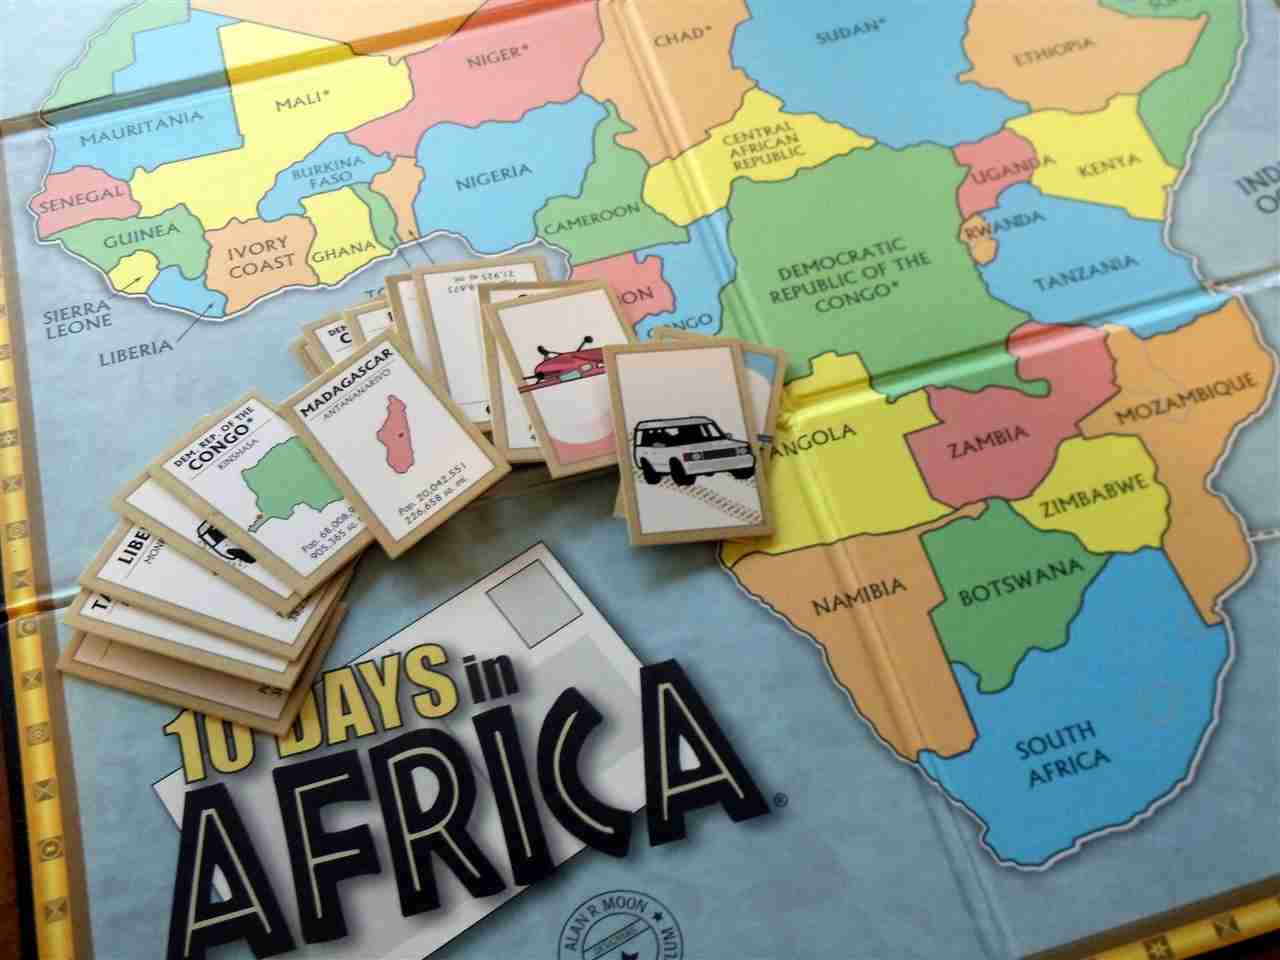 Blog, She Wrote: Geography Quest- Game Edition